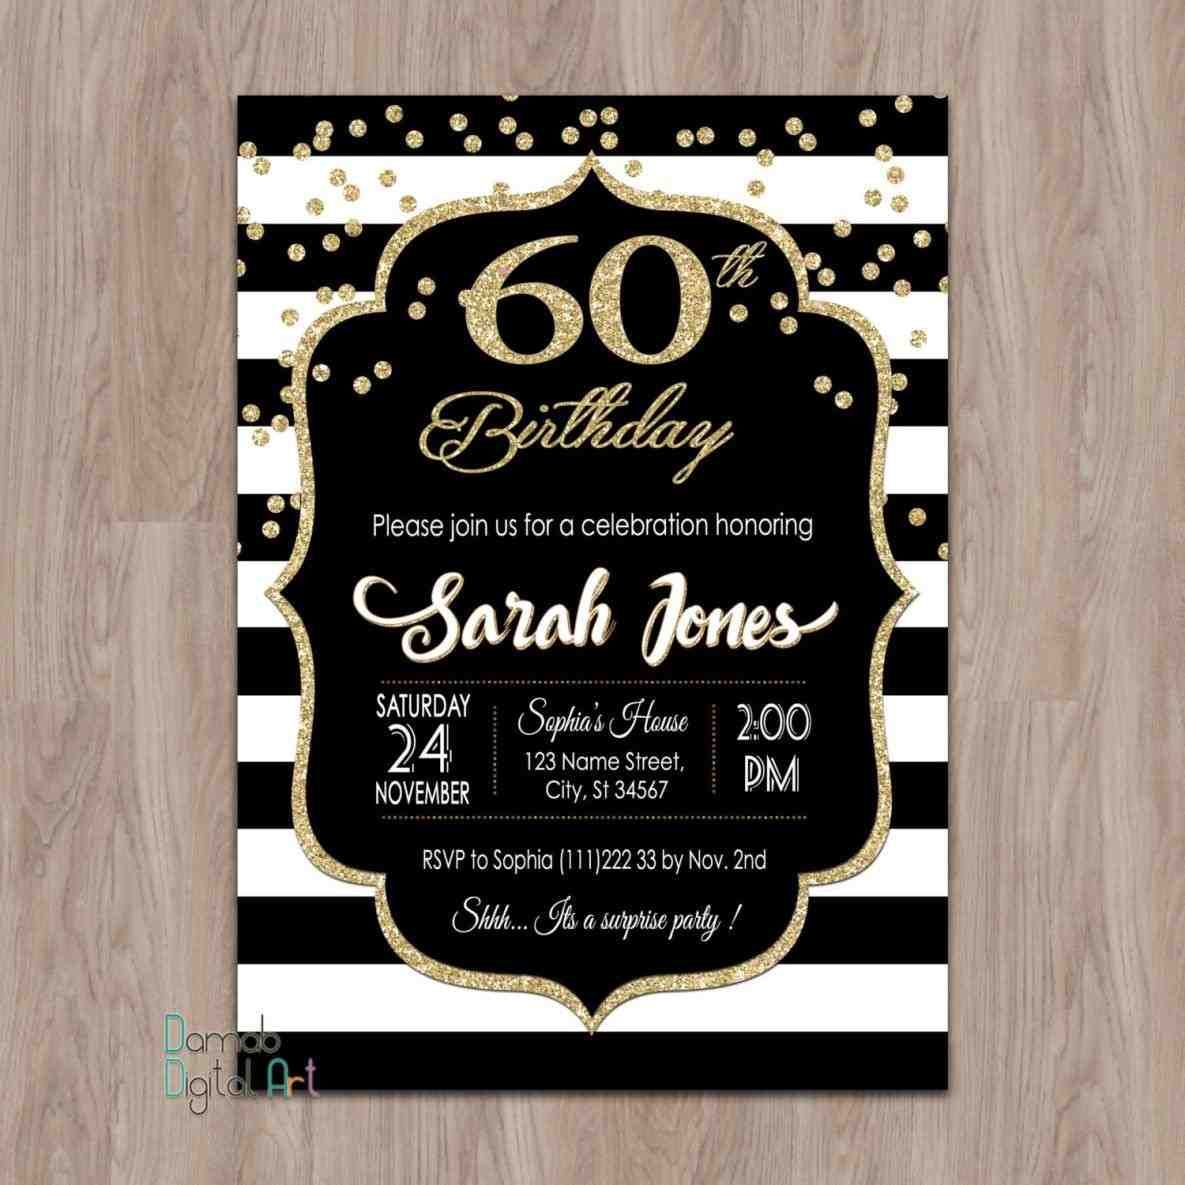 60th birthday invites 18th birthday invitation pink and black 60th birthday invites 18th birthday invitation pink and black wallpapers collection of classic debut stopboris Image collections